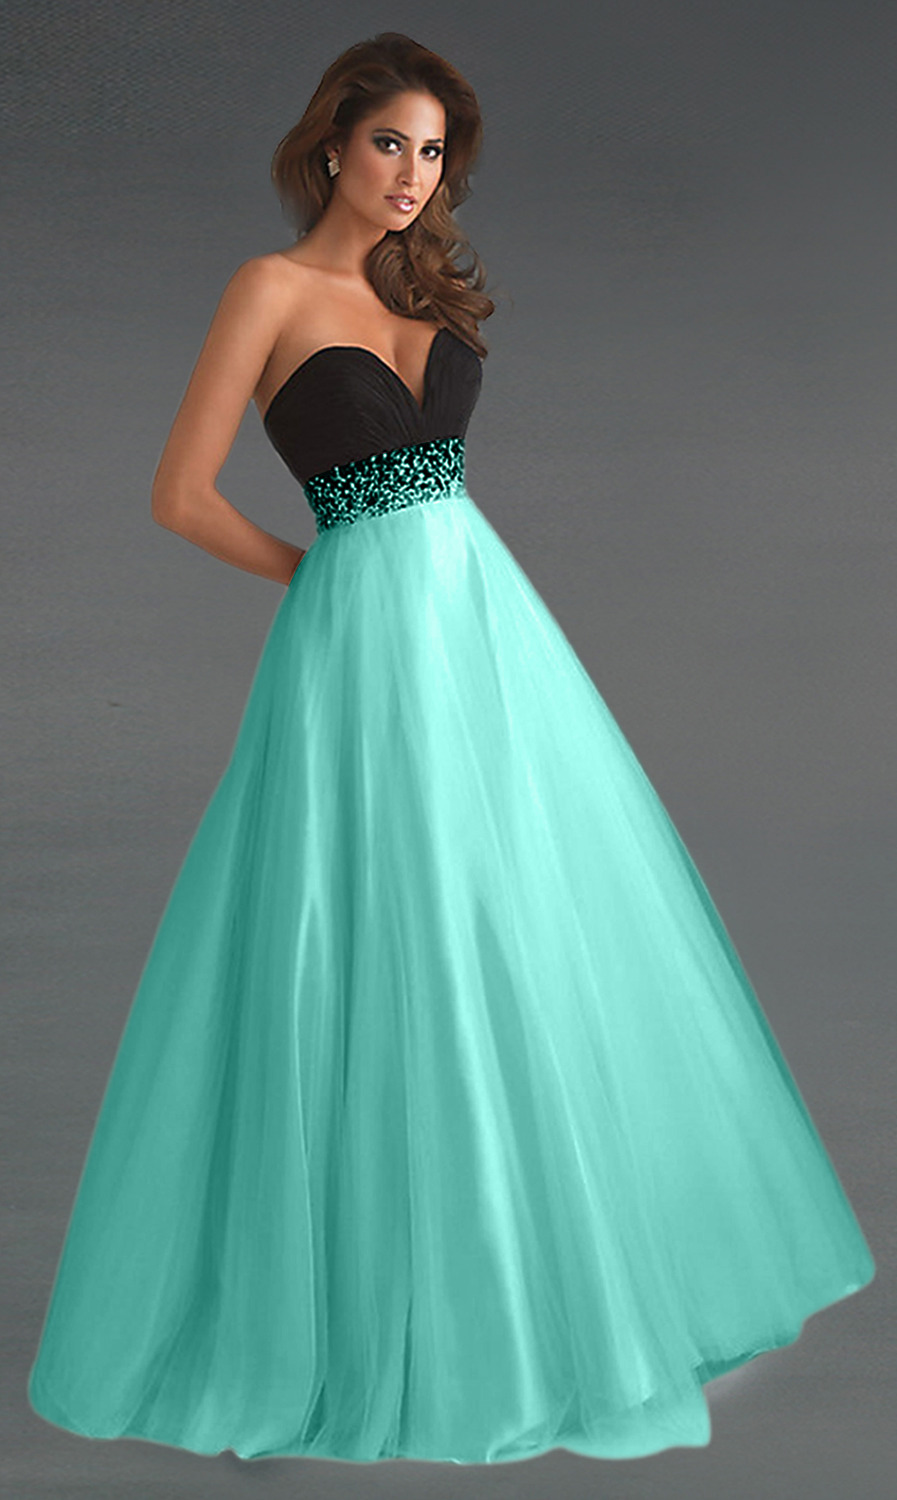 Different Types of Beautiful Long Prom Dresses | dresses ...